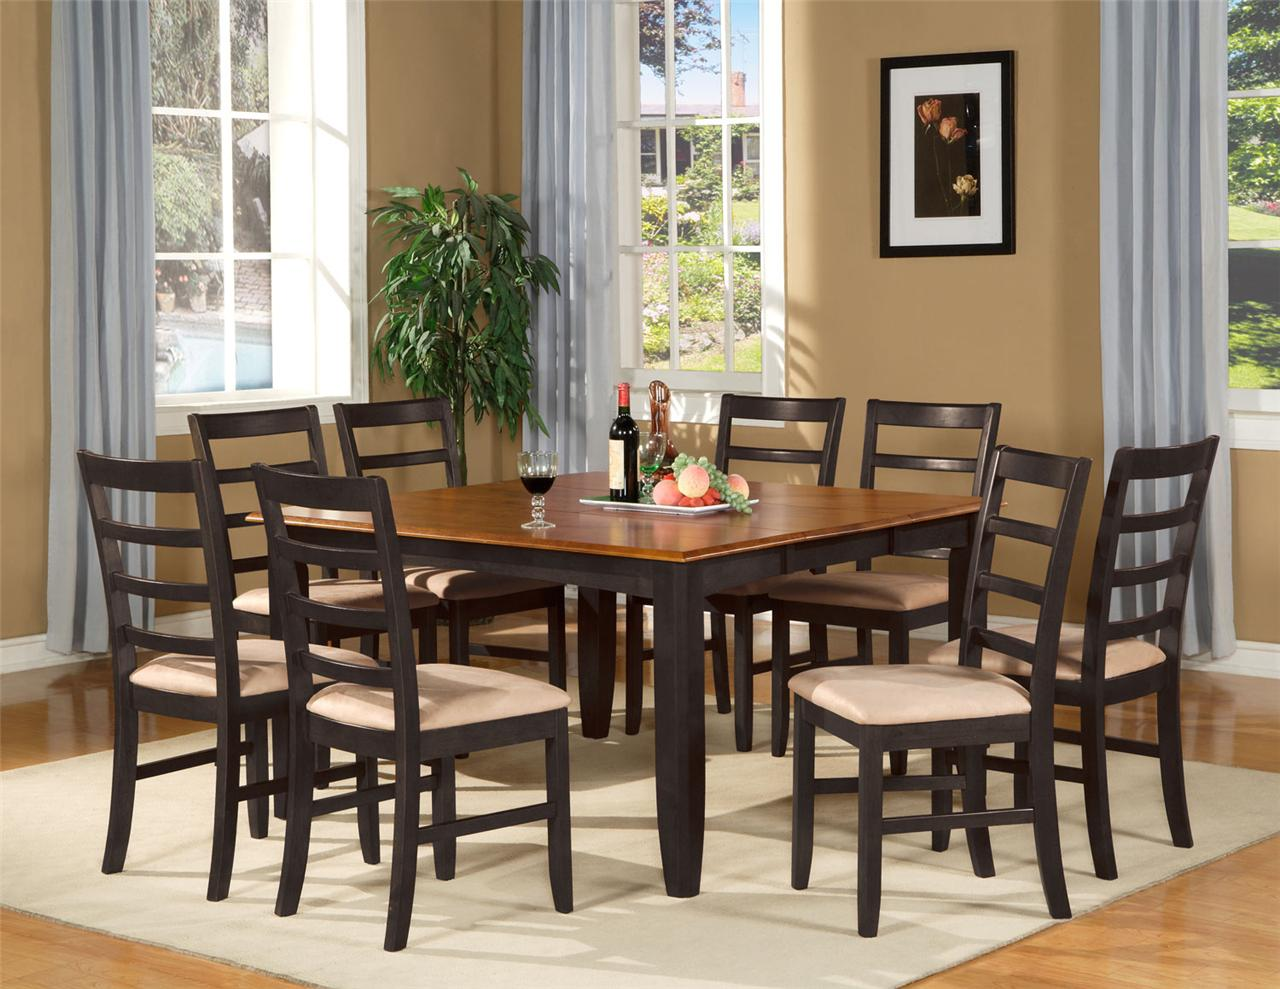 Dining Room Tables Images toronto double pedestal dining set at